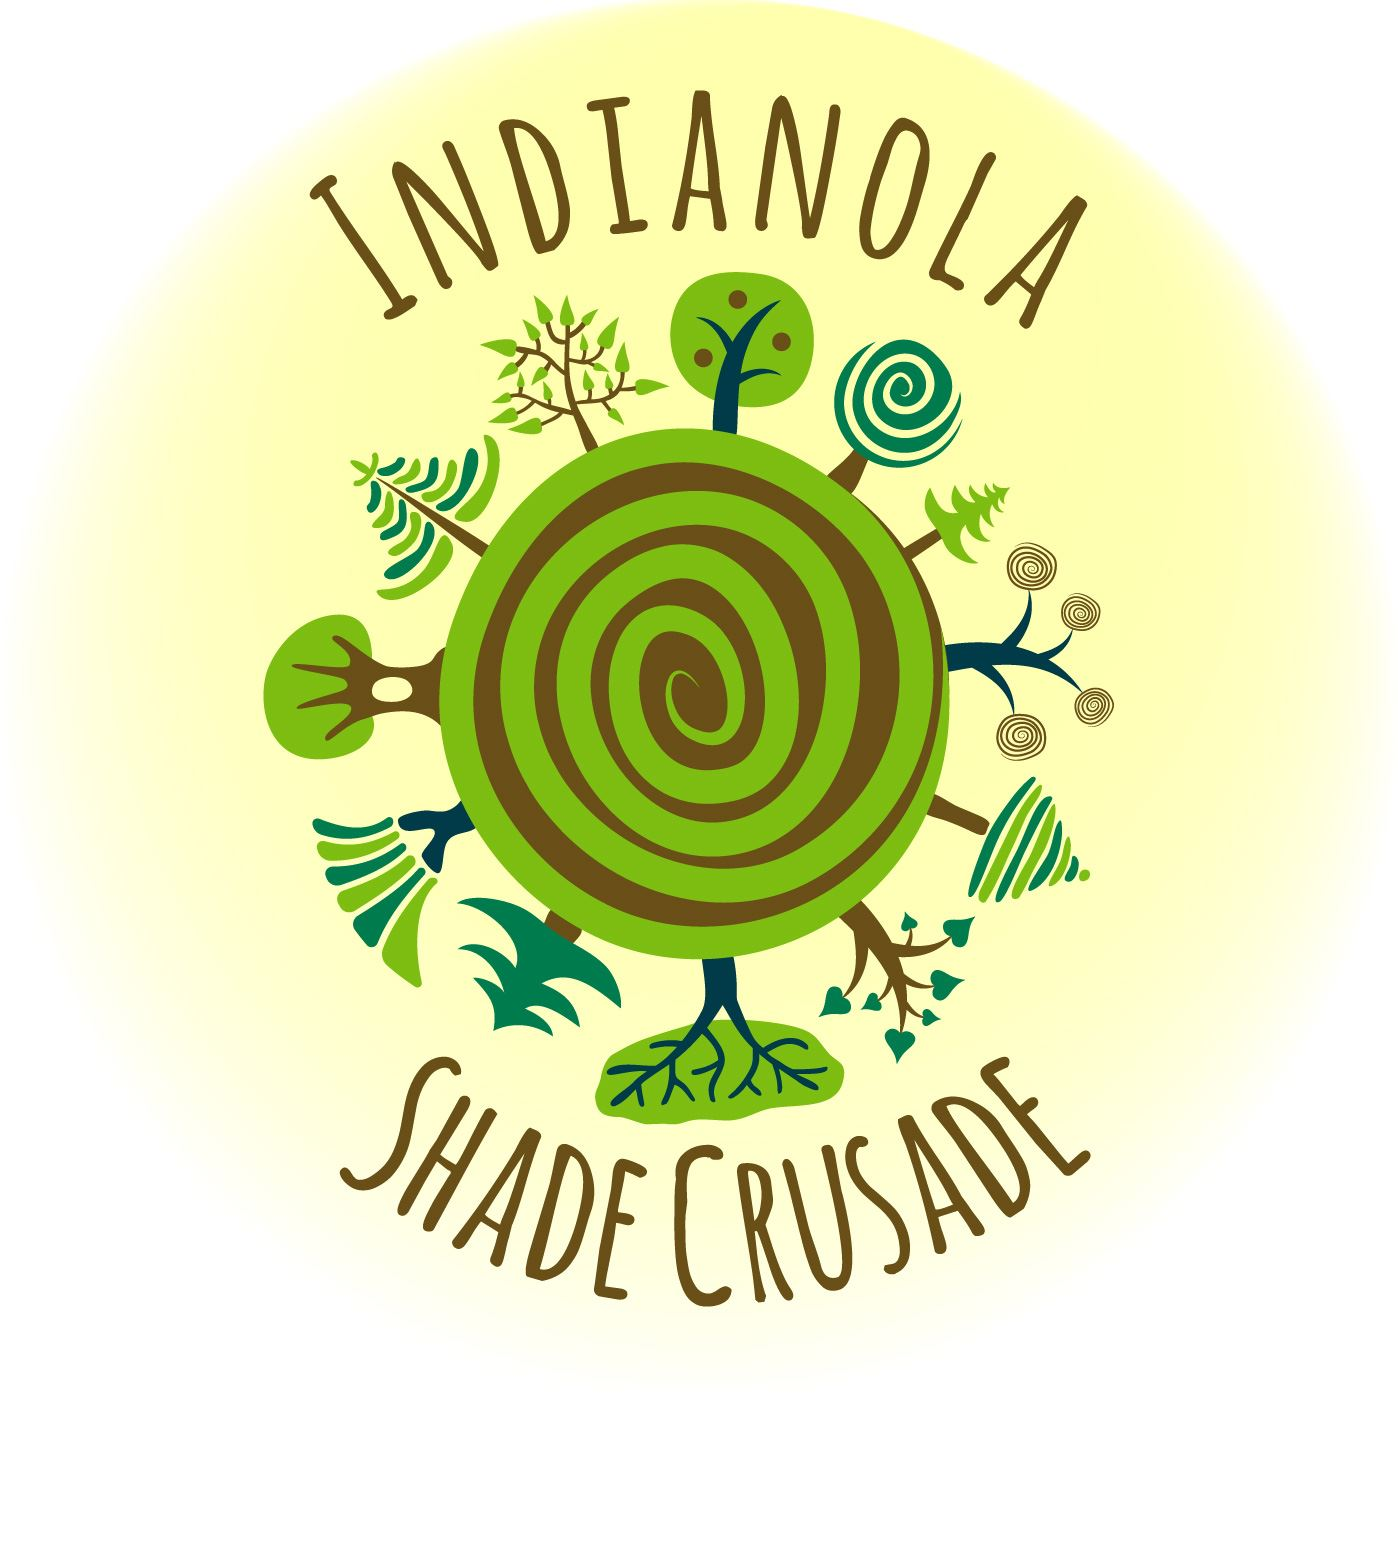 Indianola Shade Crusade